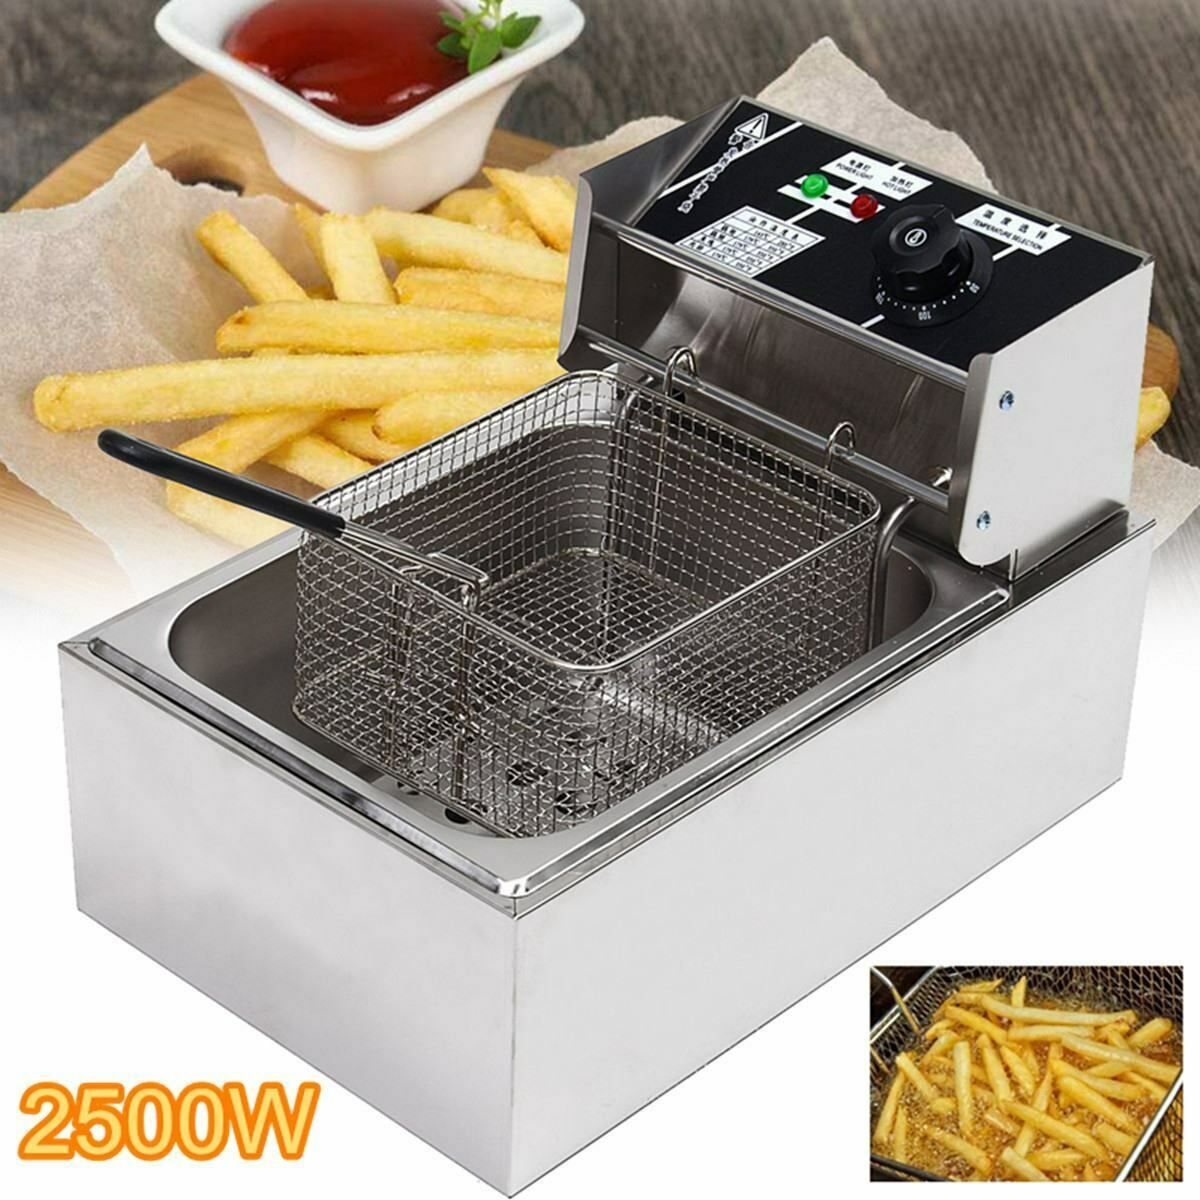 2500W 6.3QT/6L Stainless Steel Electric Deep Fryer Home